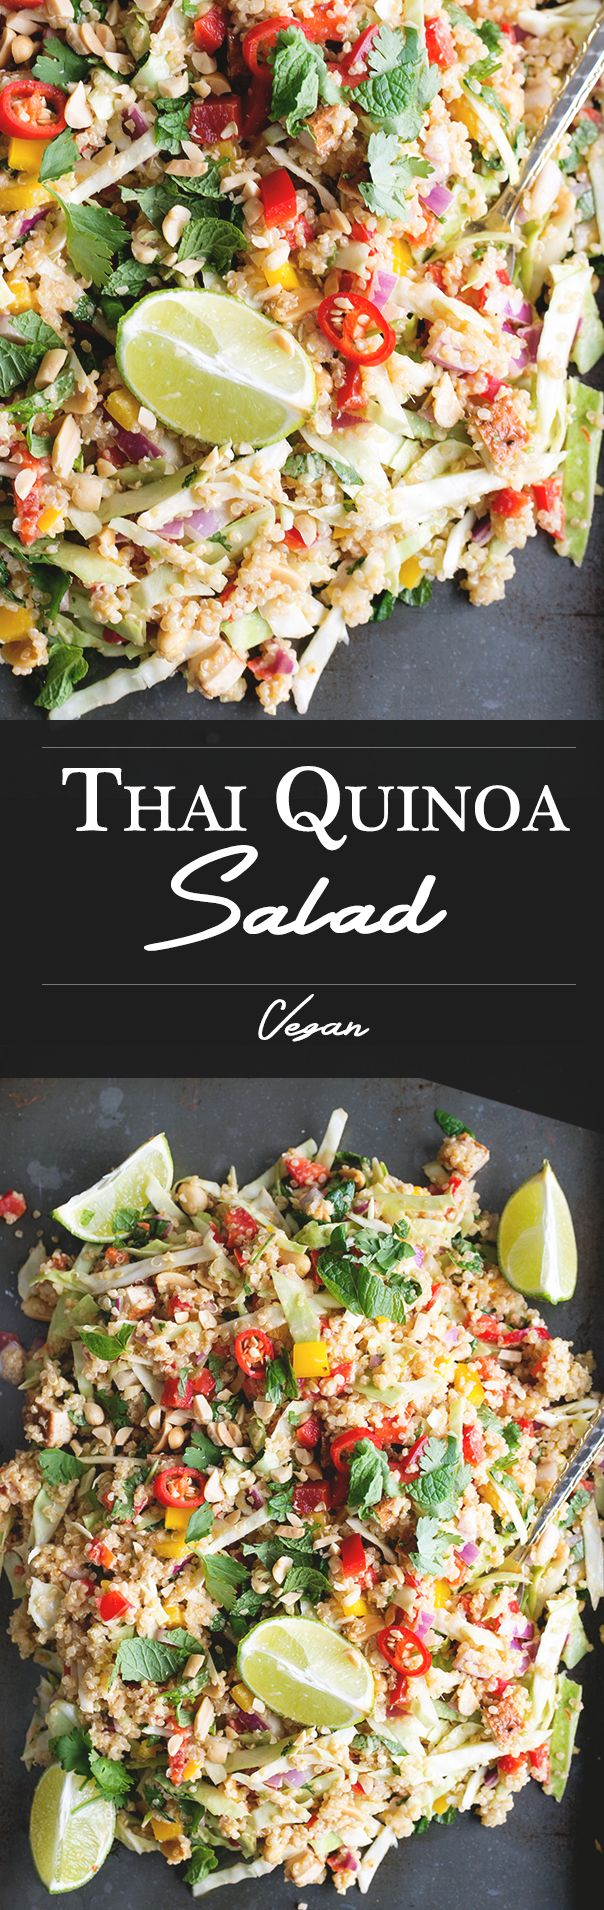 Delicious, Healthy Thai Quinoa Salad with Lemongrass Peanut Dressing. Vegan/Gluten Free.